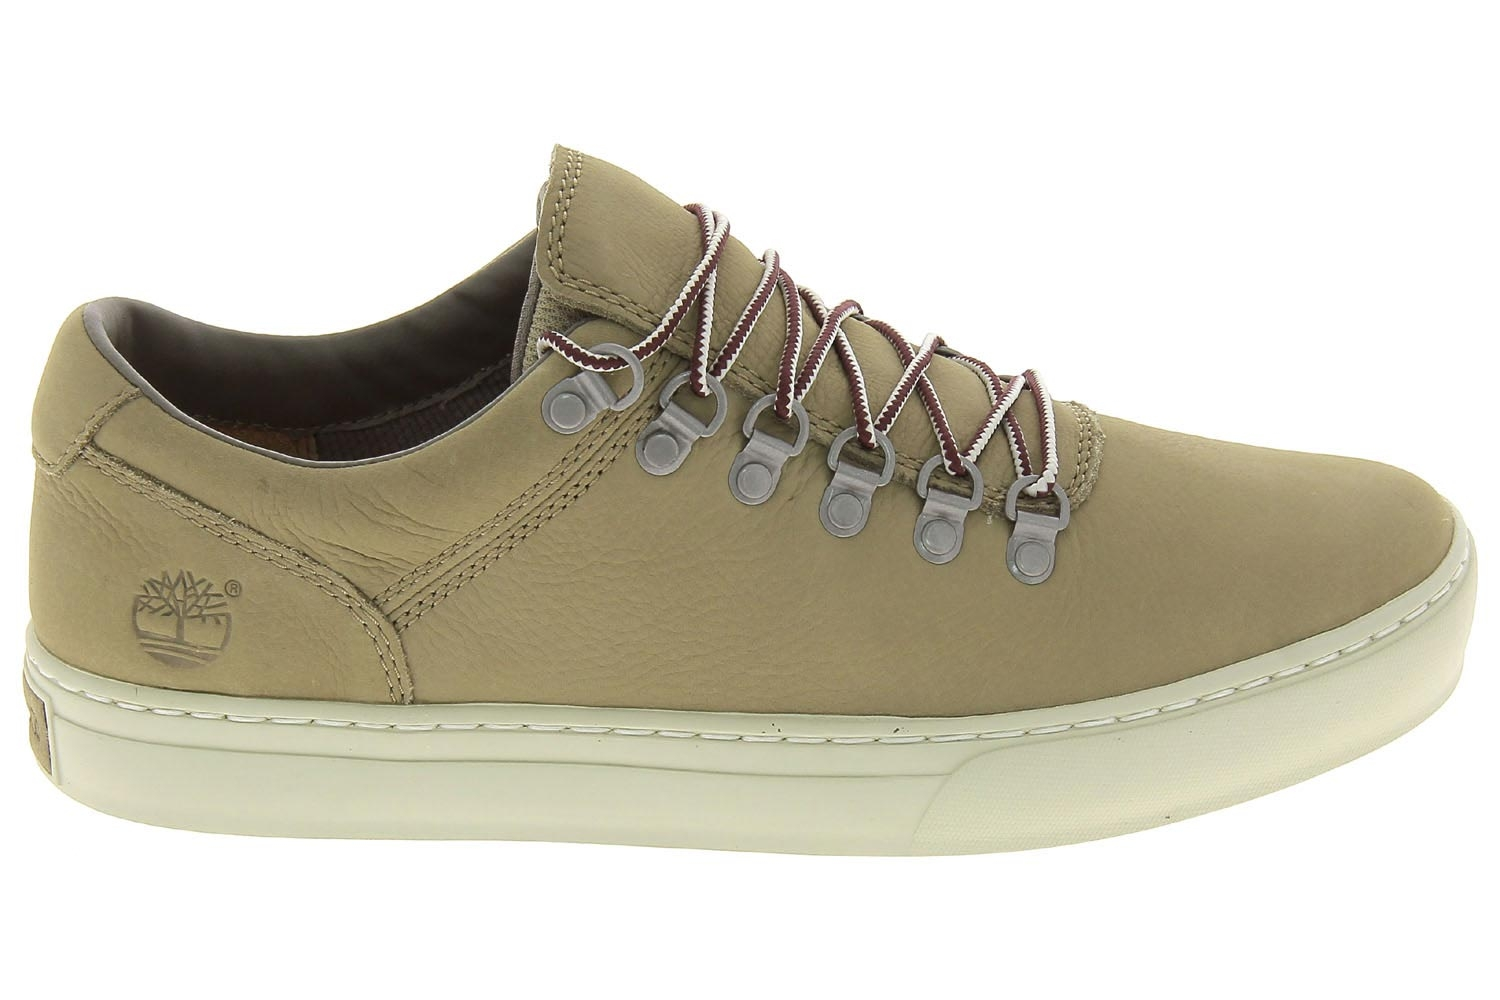 Cupsole Qzmpguvs Chaussures Homme Timberland Beige Baskets Adv 20 YEW29DIH